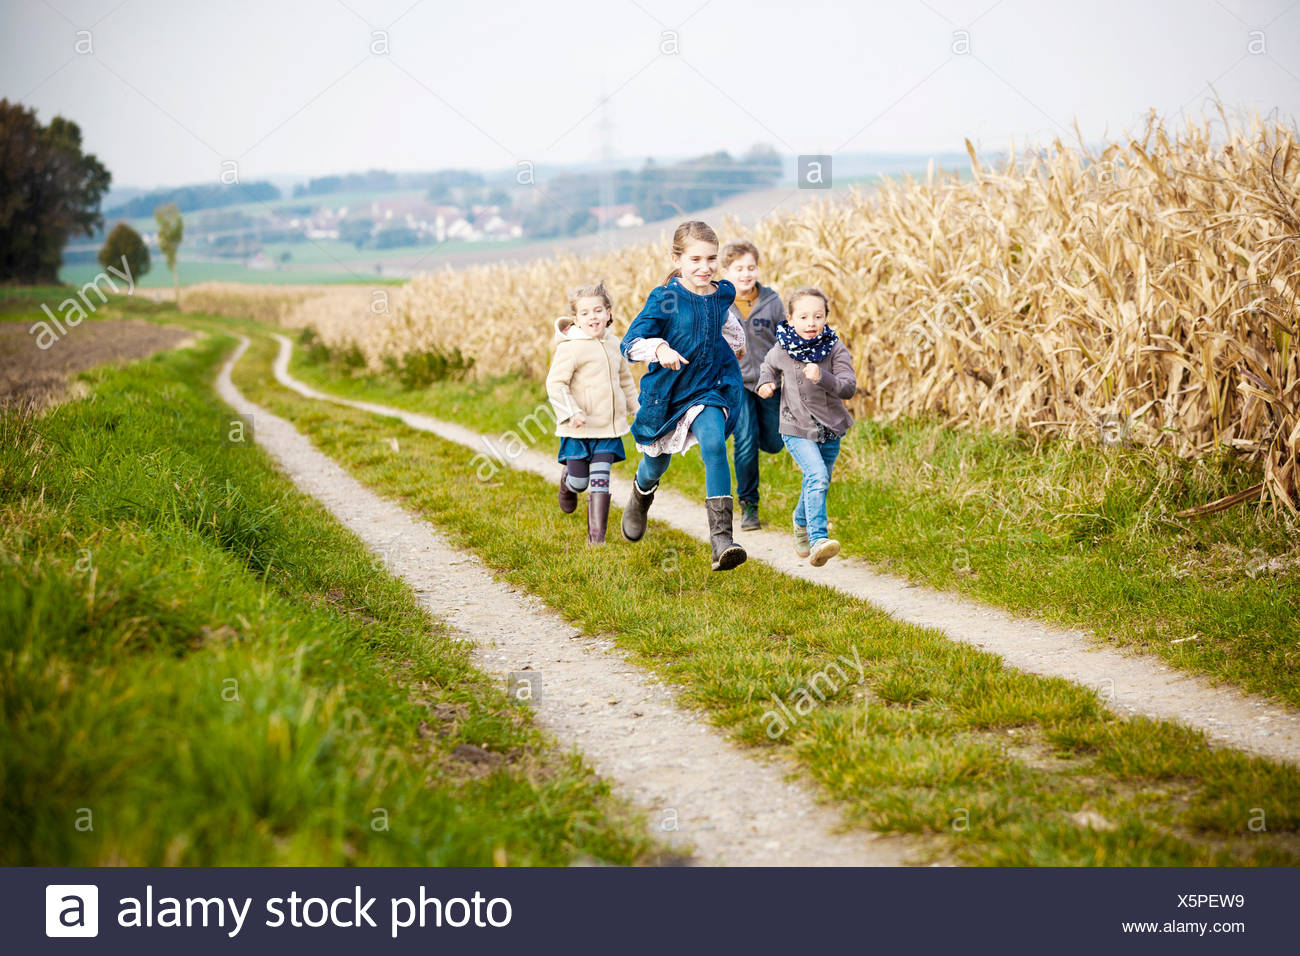 Four children playing outdoors - Stock Image